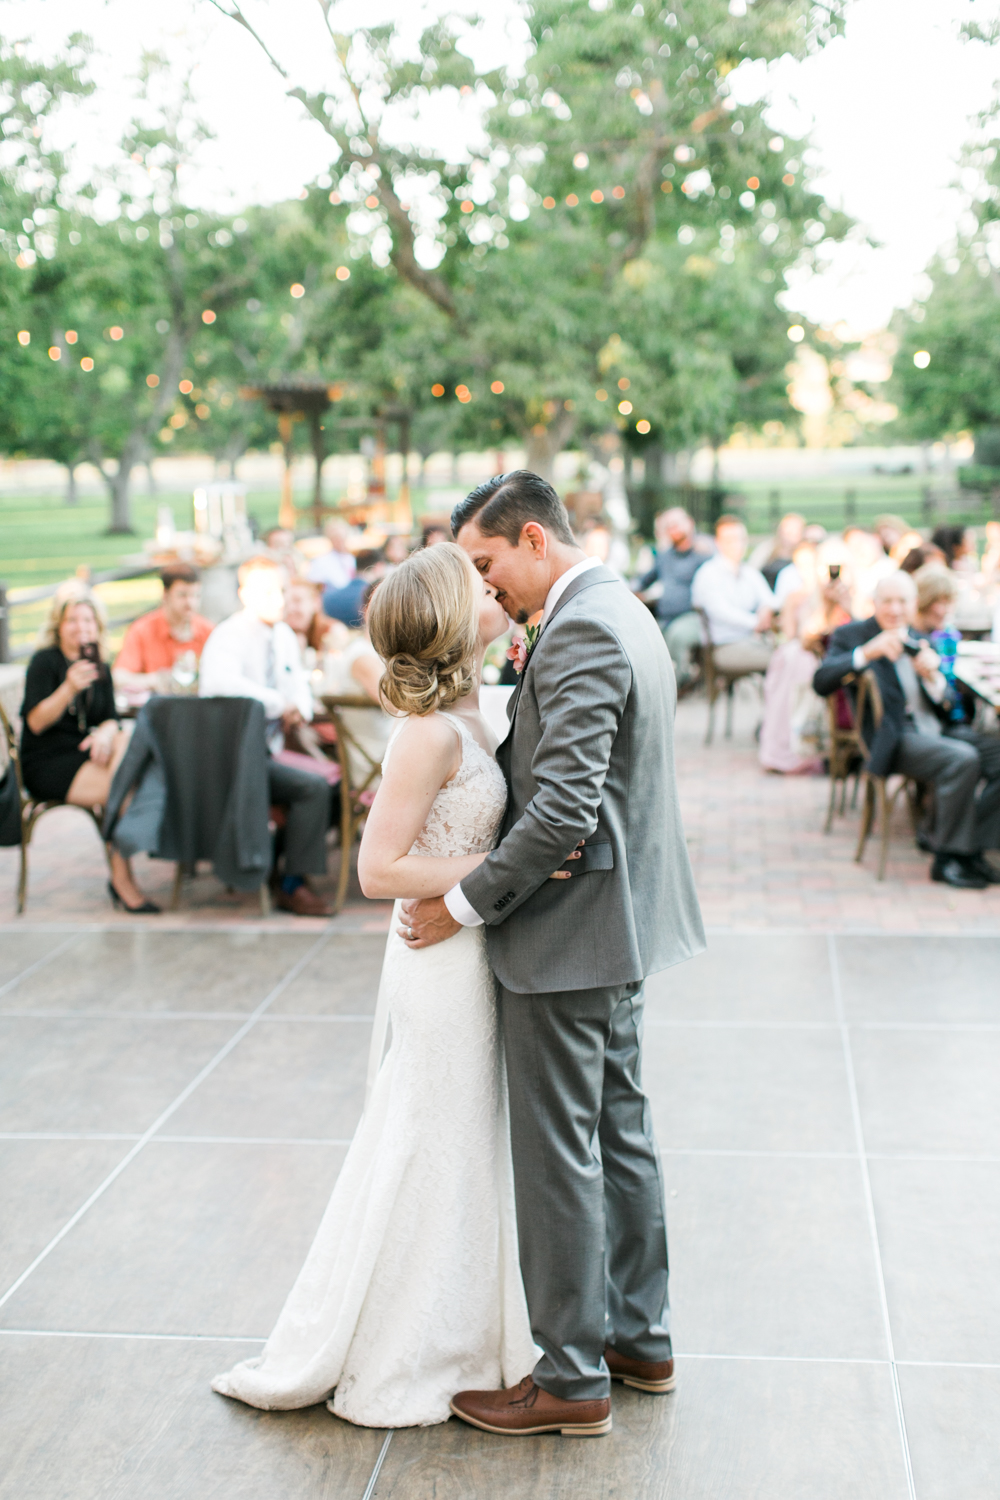 Bride and Groom have first dance at Walnut Grove wedding in Moorpark, Ca.